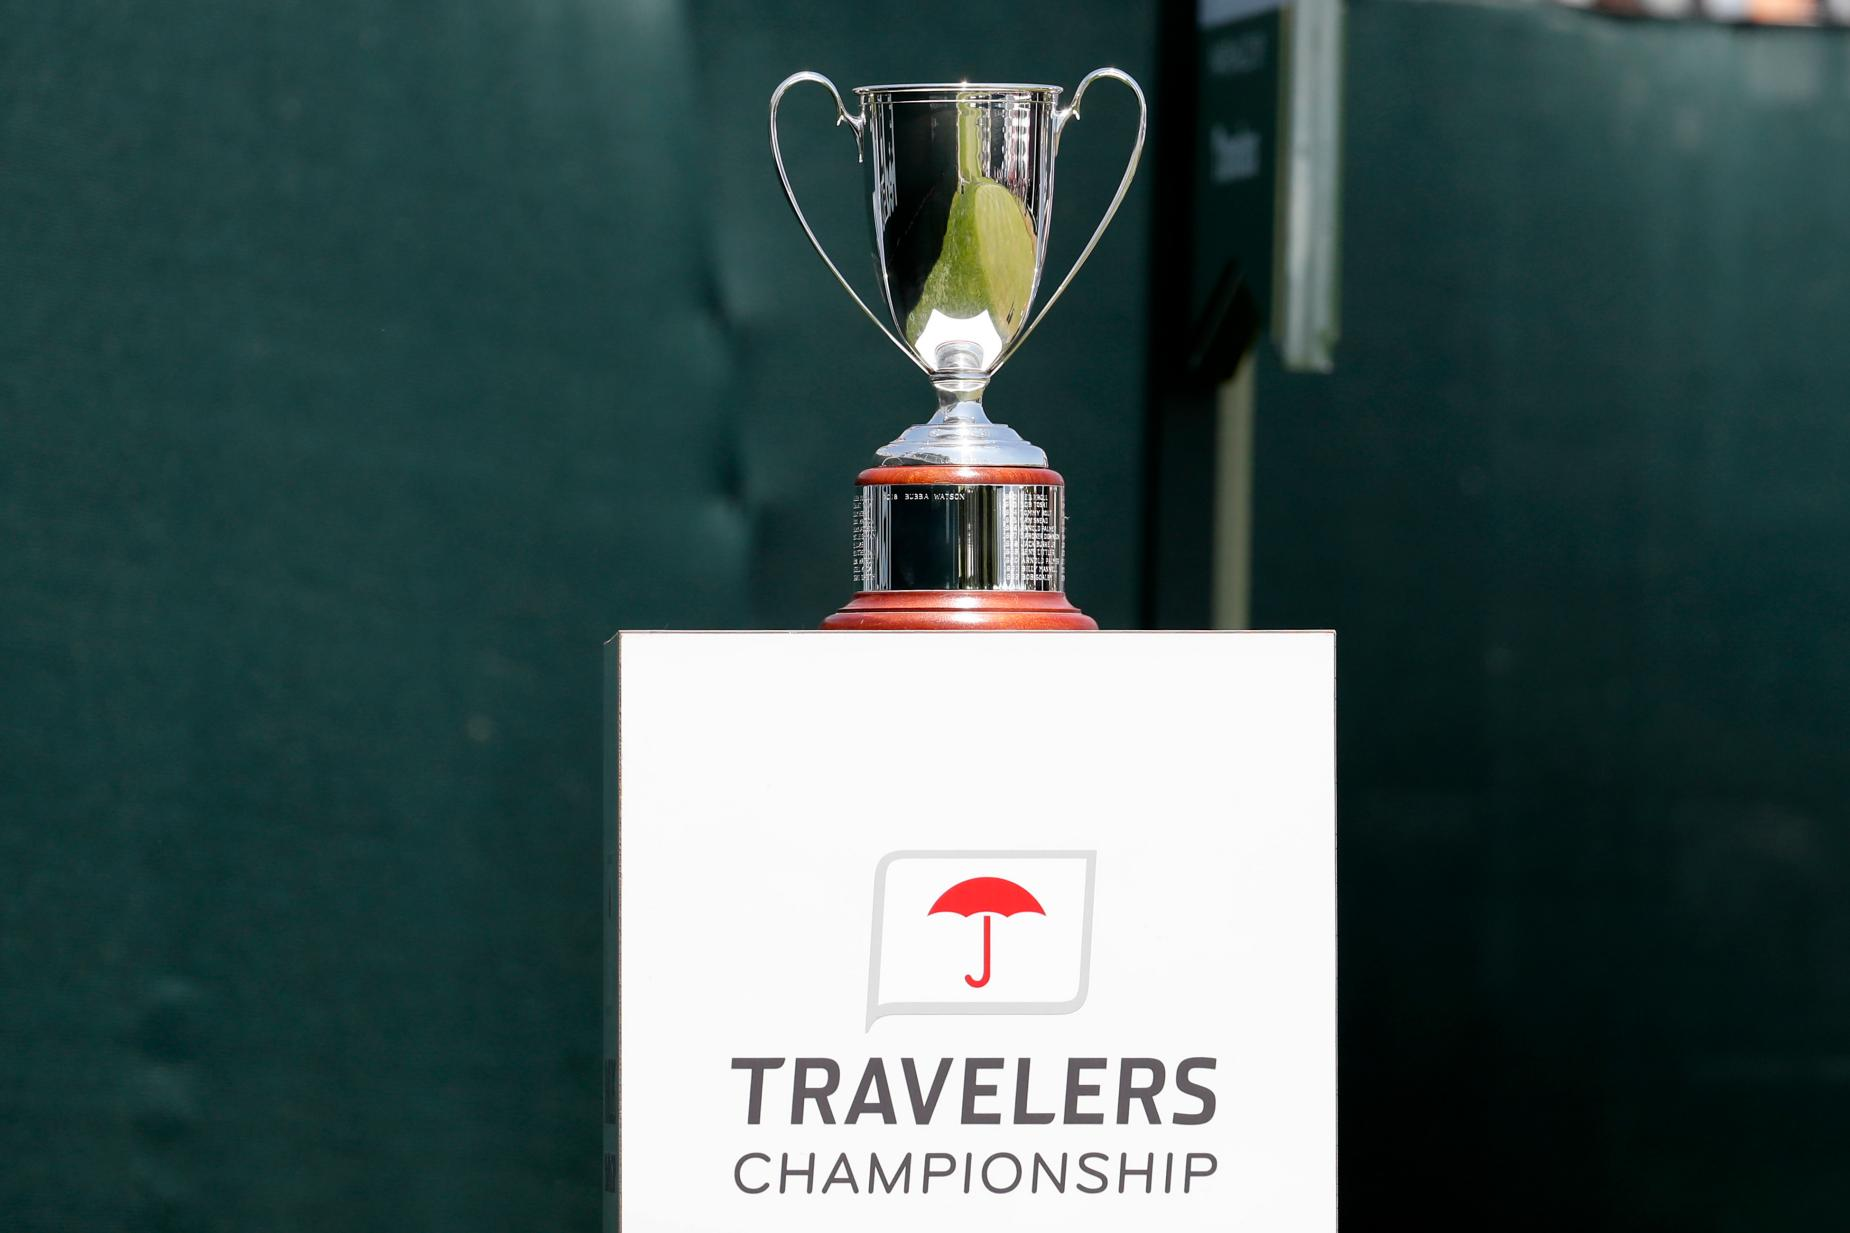 Travelers-trophy-field.jpg